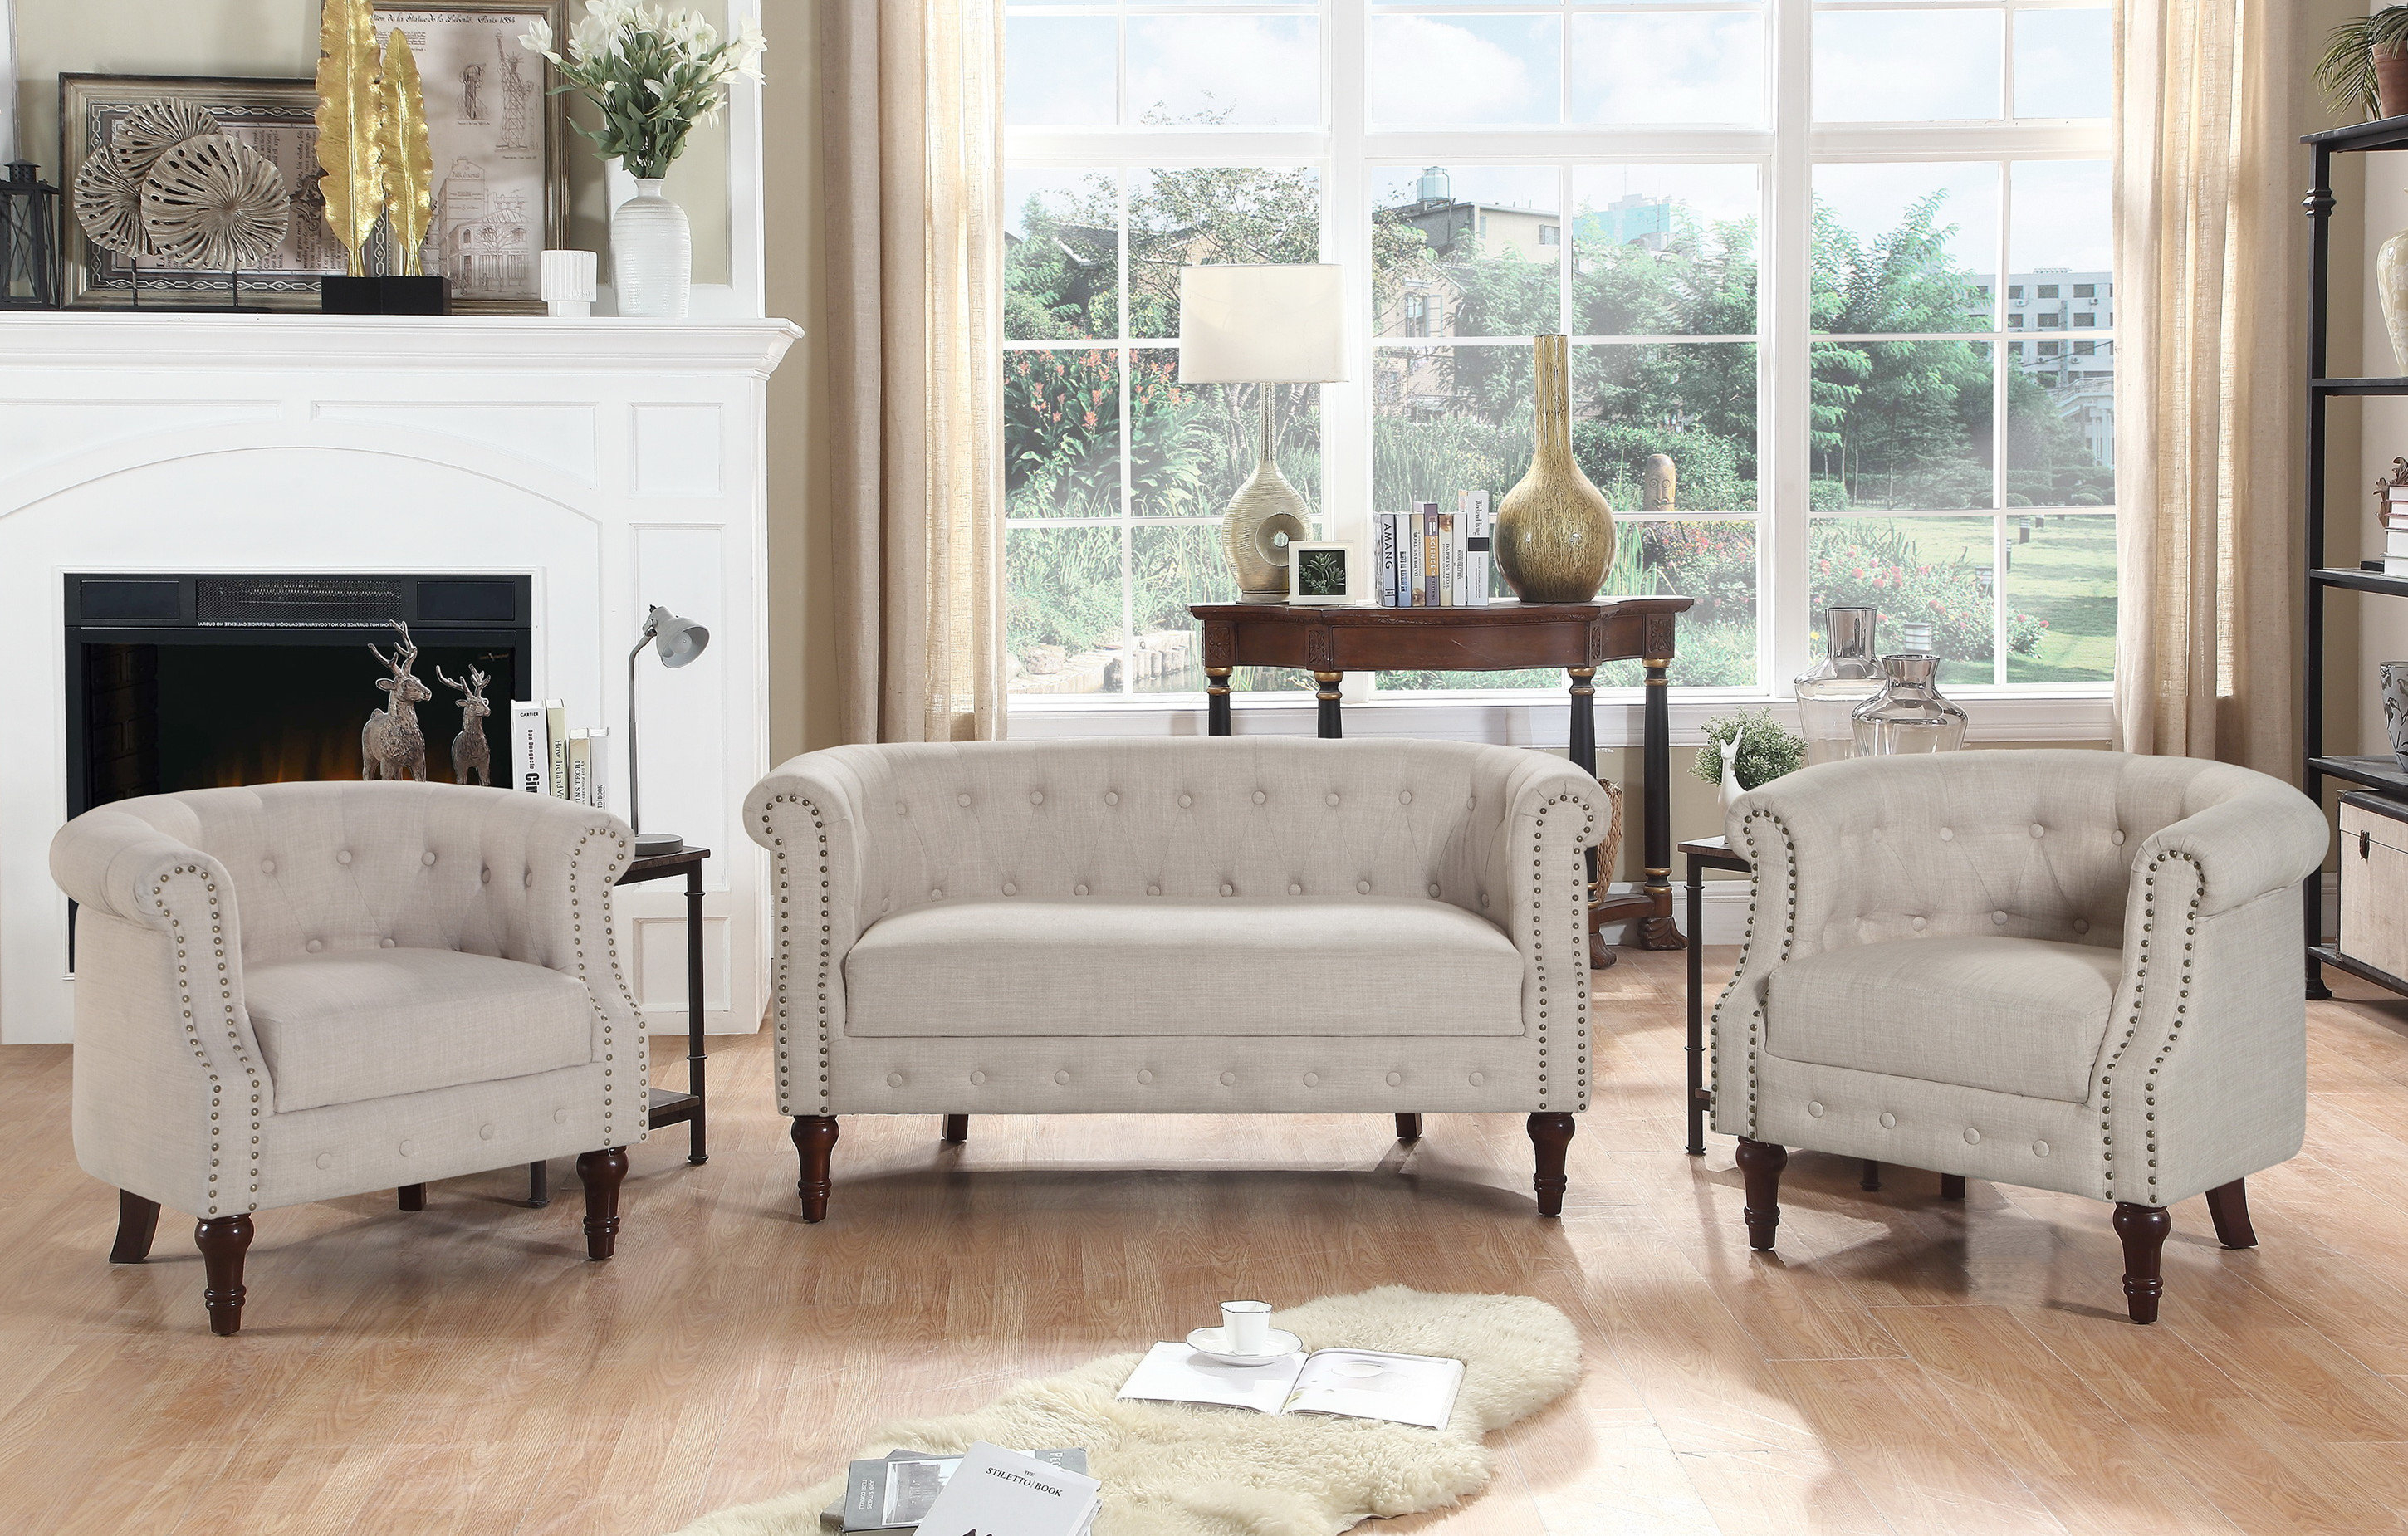 Kelty 3 Piece Living Room Set with regard to Best Living Room Set